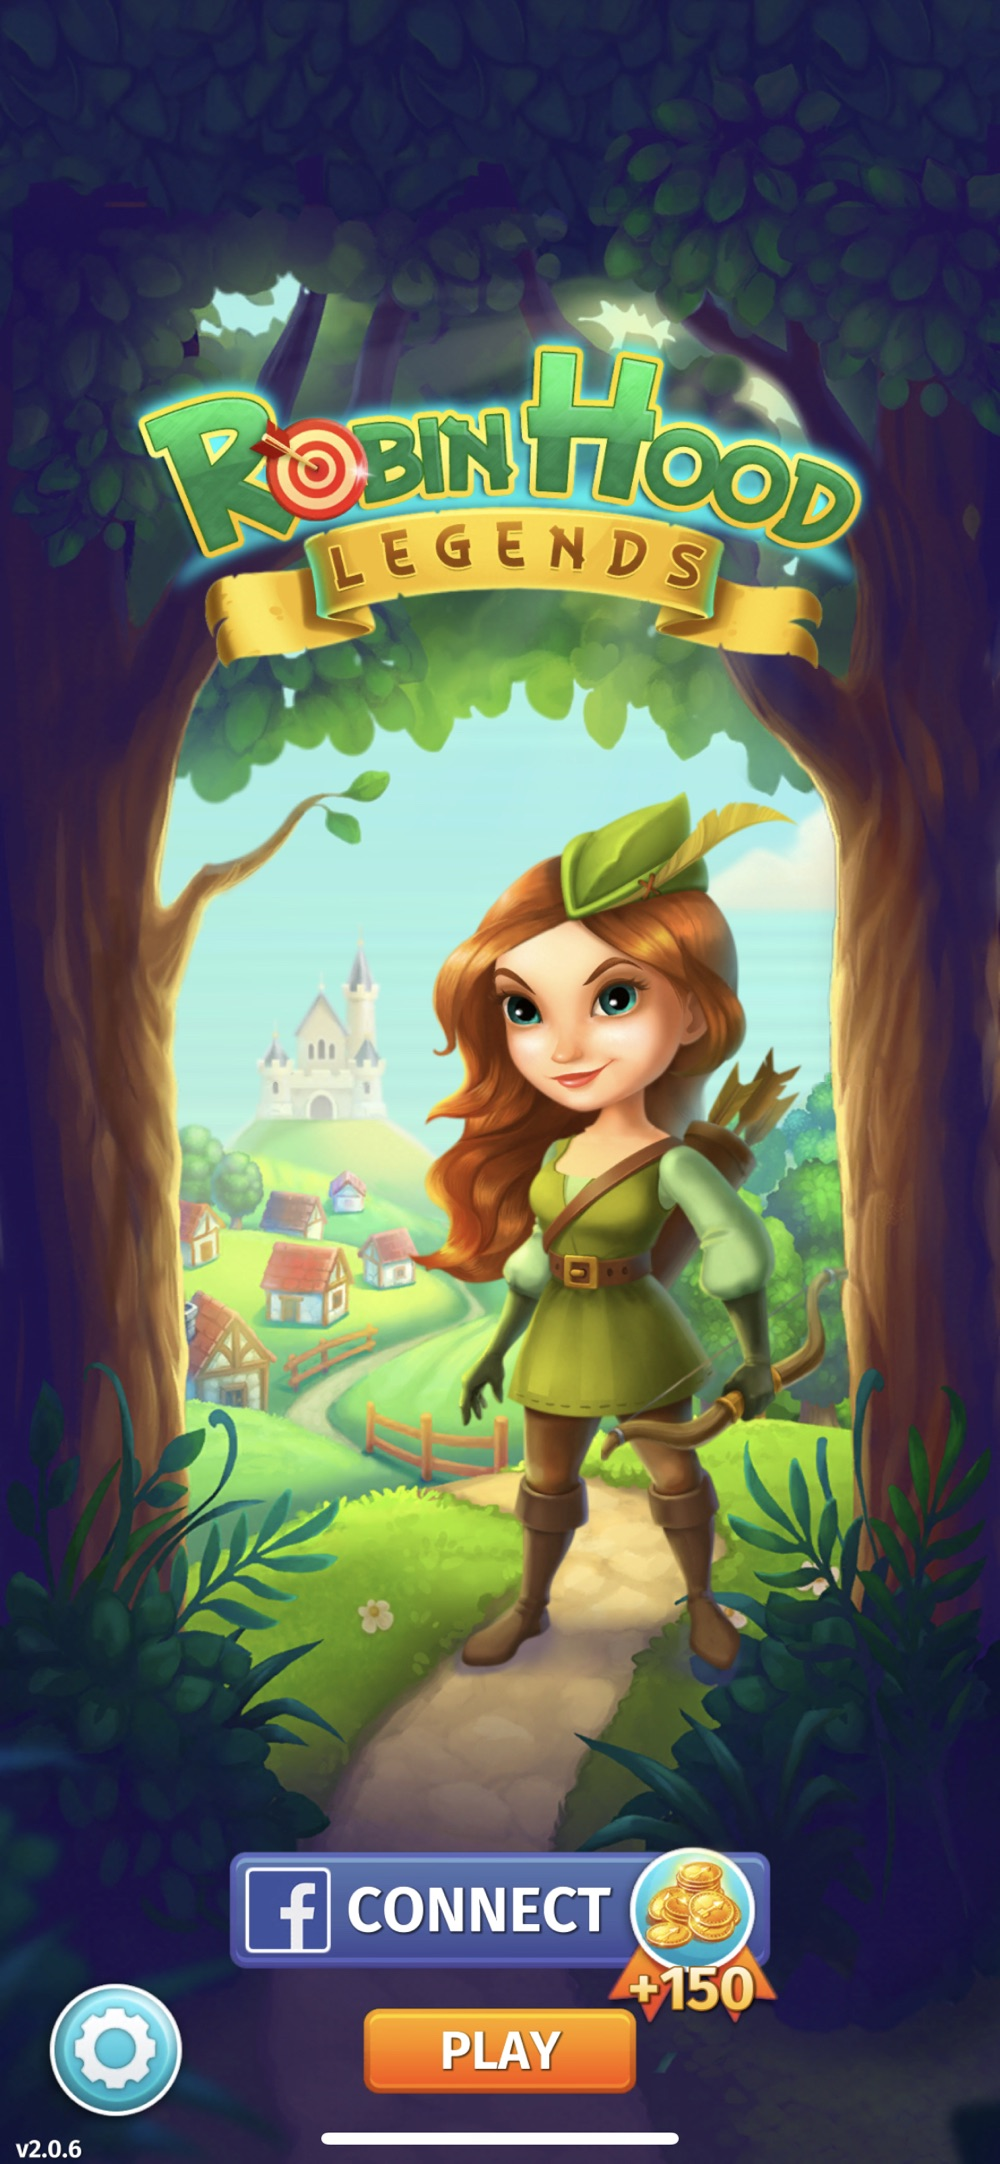 Robin Hood Legends – Merge 3 Cheat Codes